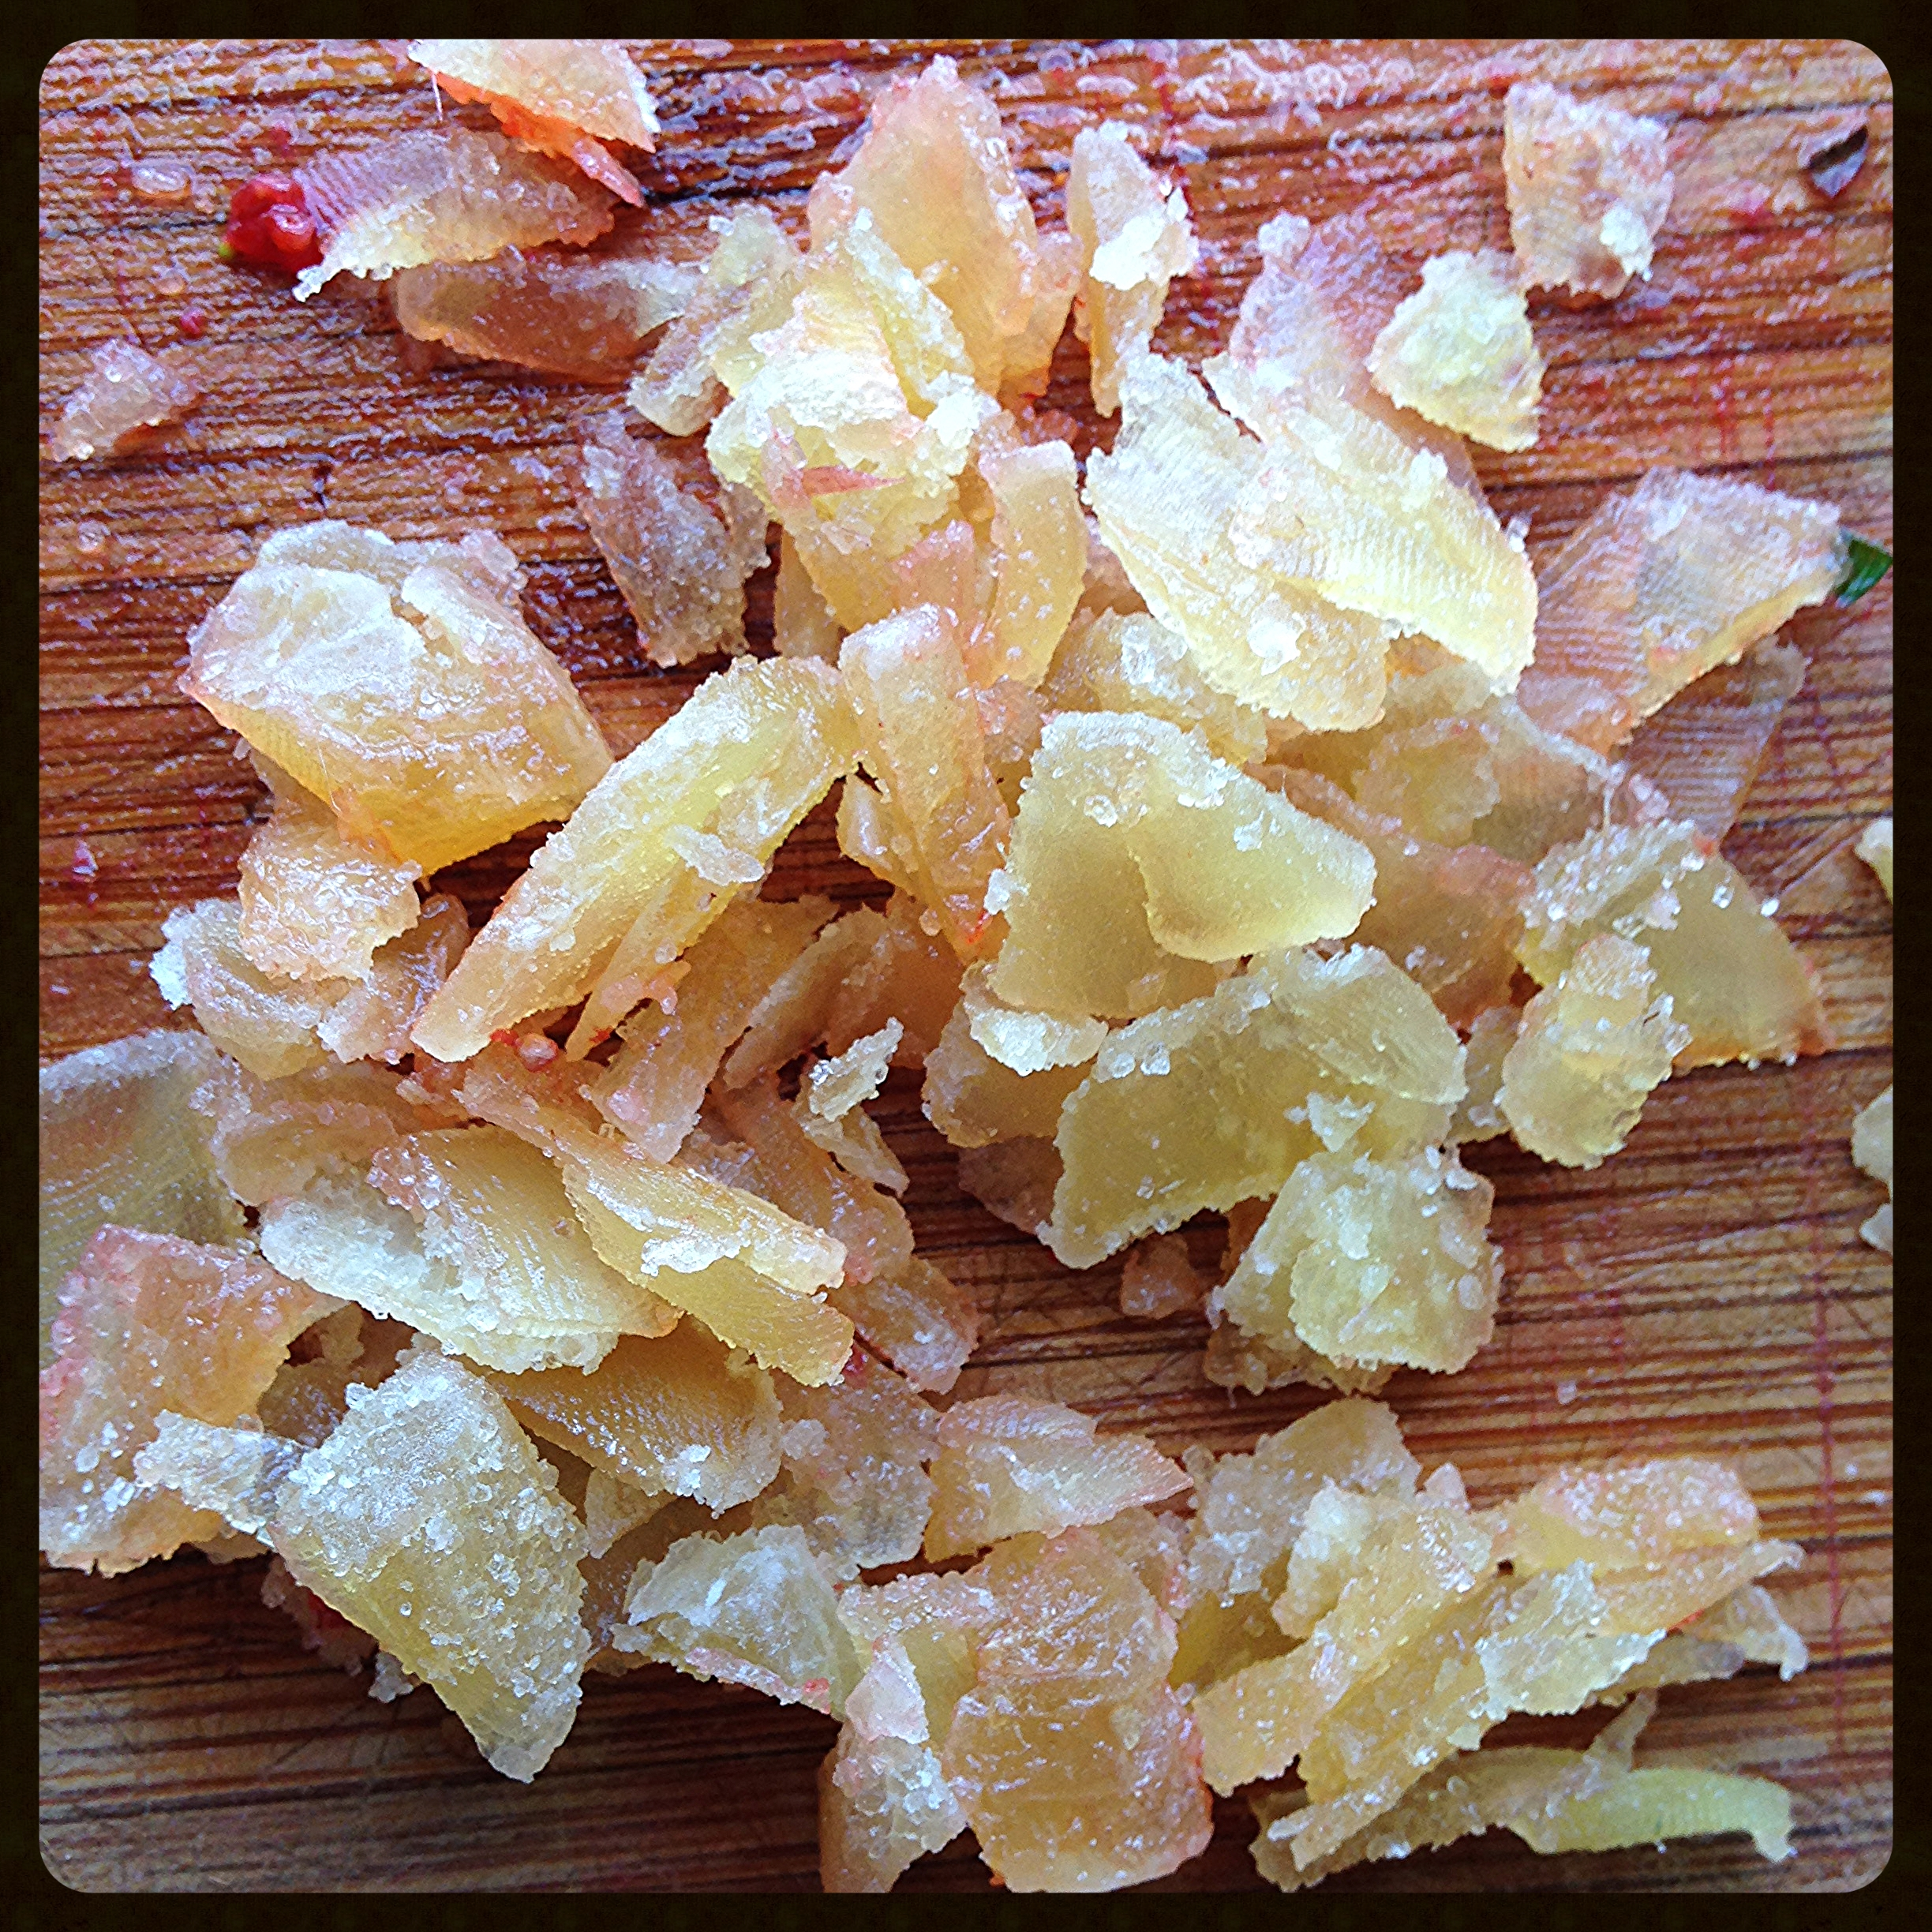 Chopped crystallized ginger